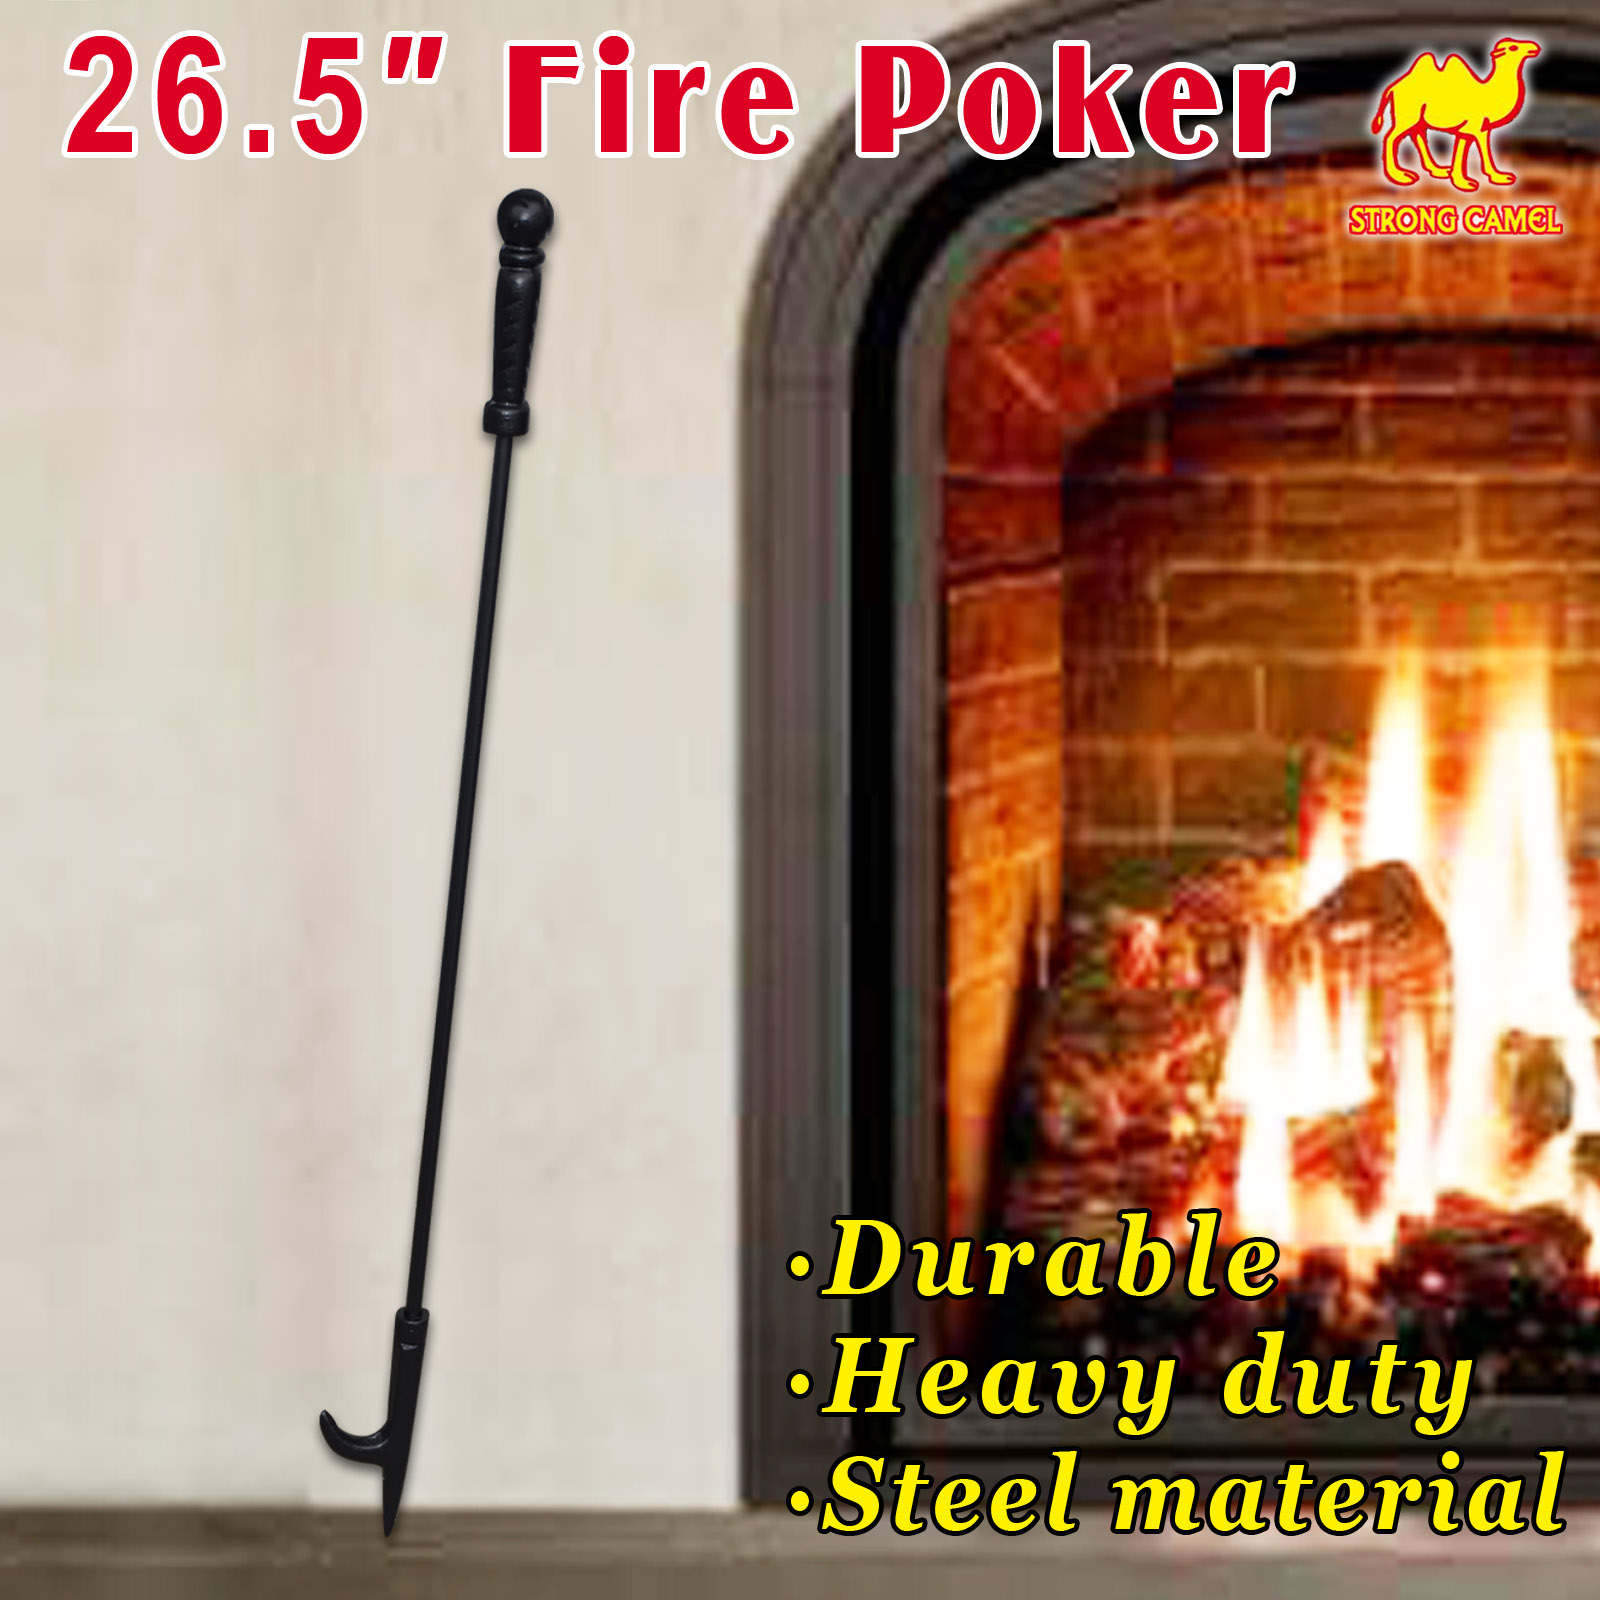 "Strong Camel Campfire Fireplace Fire Poker Tool Extra Long 26.5"", Black"